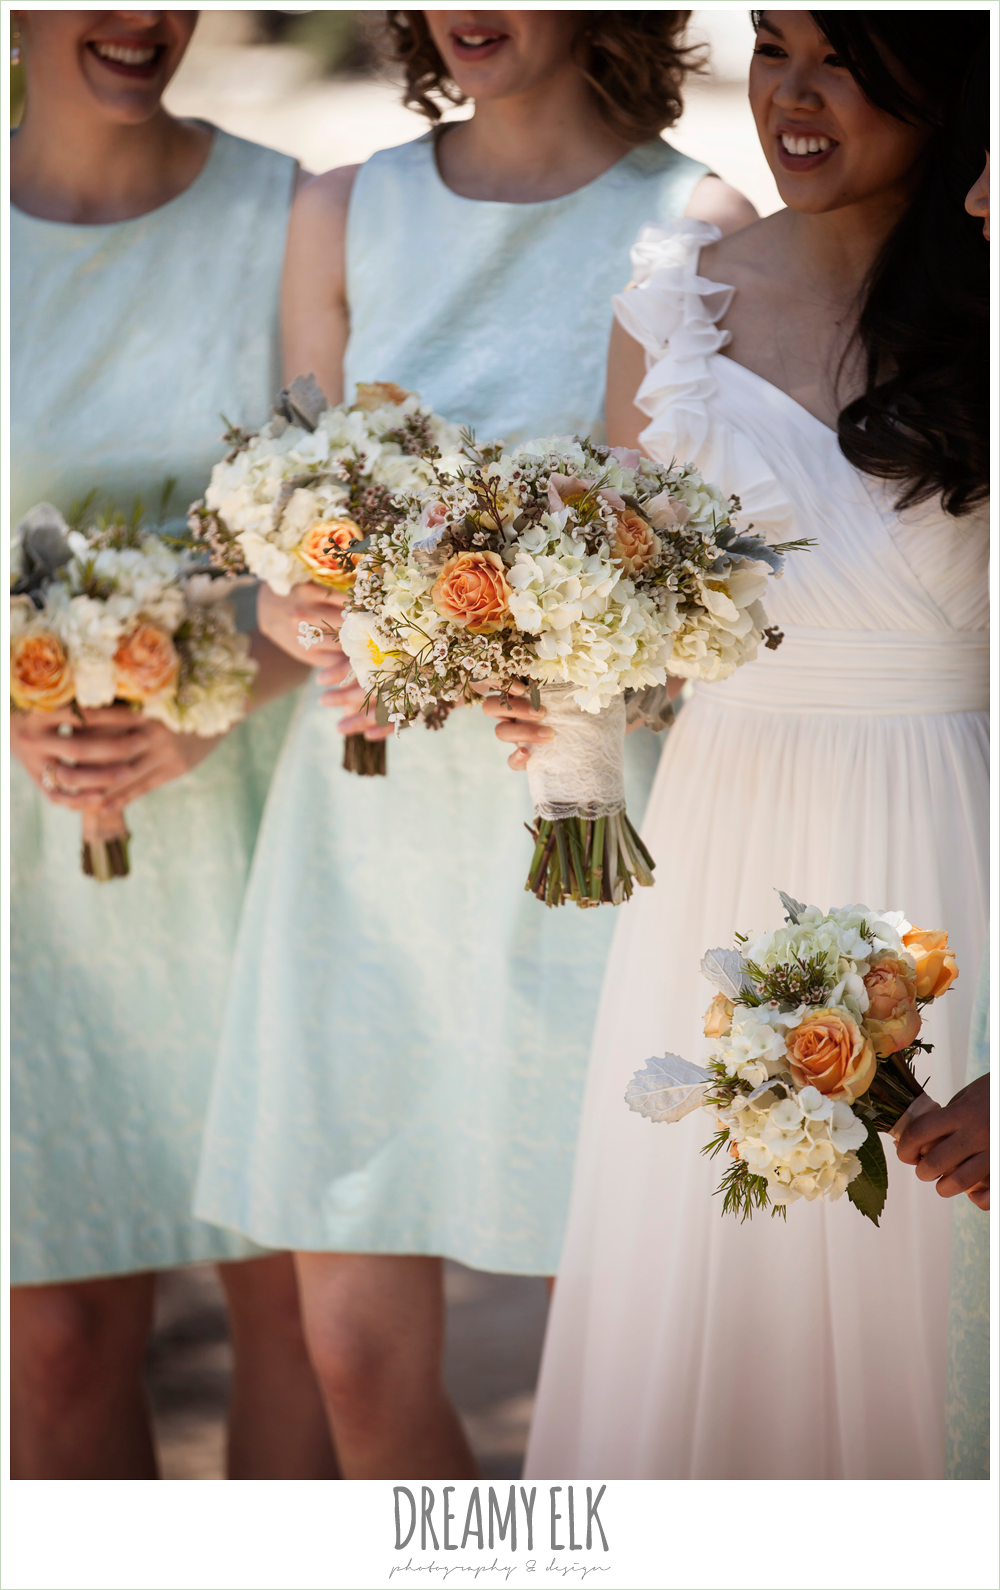 mint bridesmaids dresses, pink orange and yellow bouquet, wild bunches florist, fringe events and design, la hacienda, dripping springs, texas {dreamy elk photography and design} photo